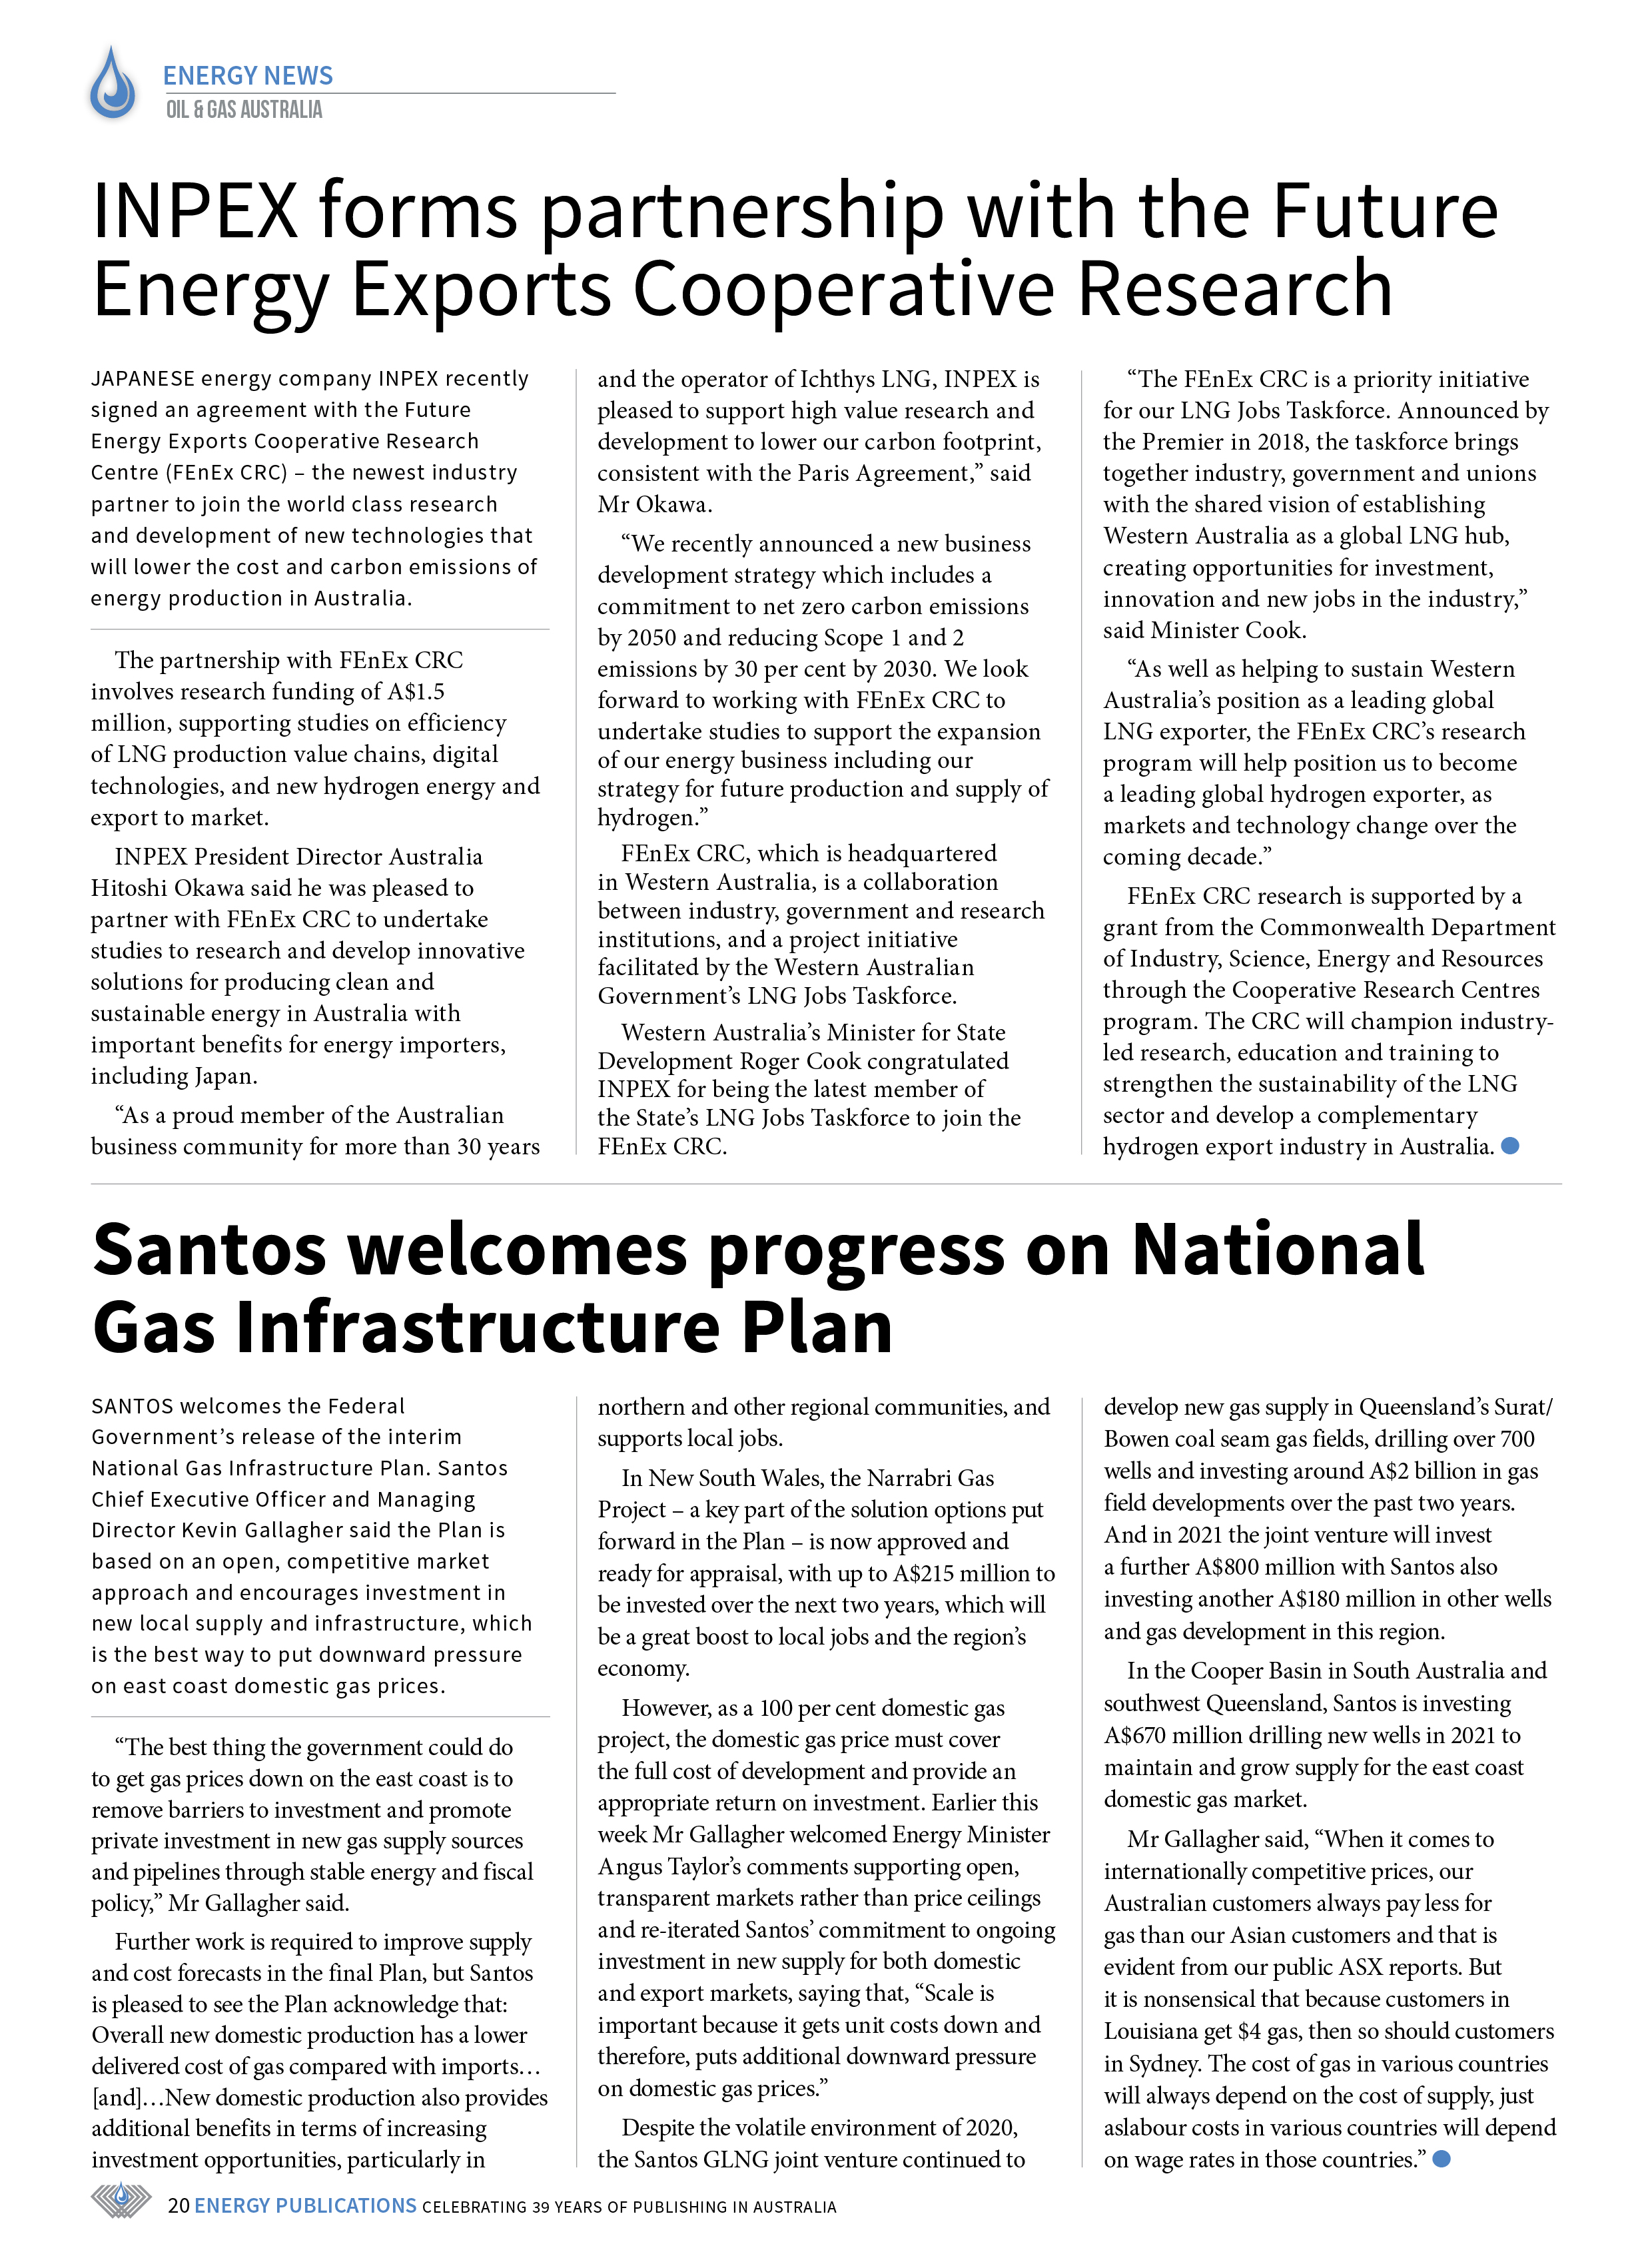 Oil & Gas Australia – May 2021 – Page 22